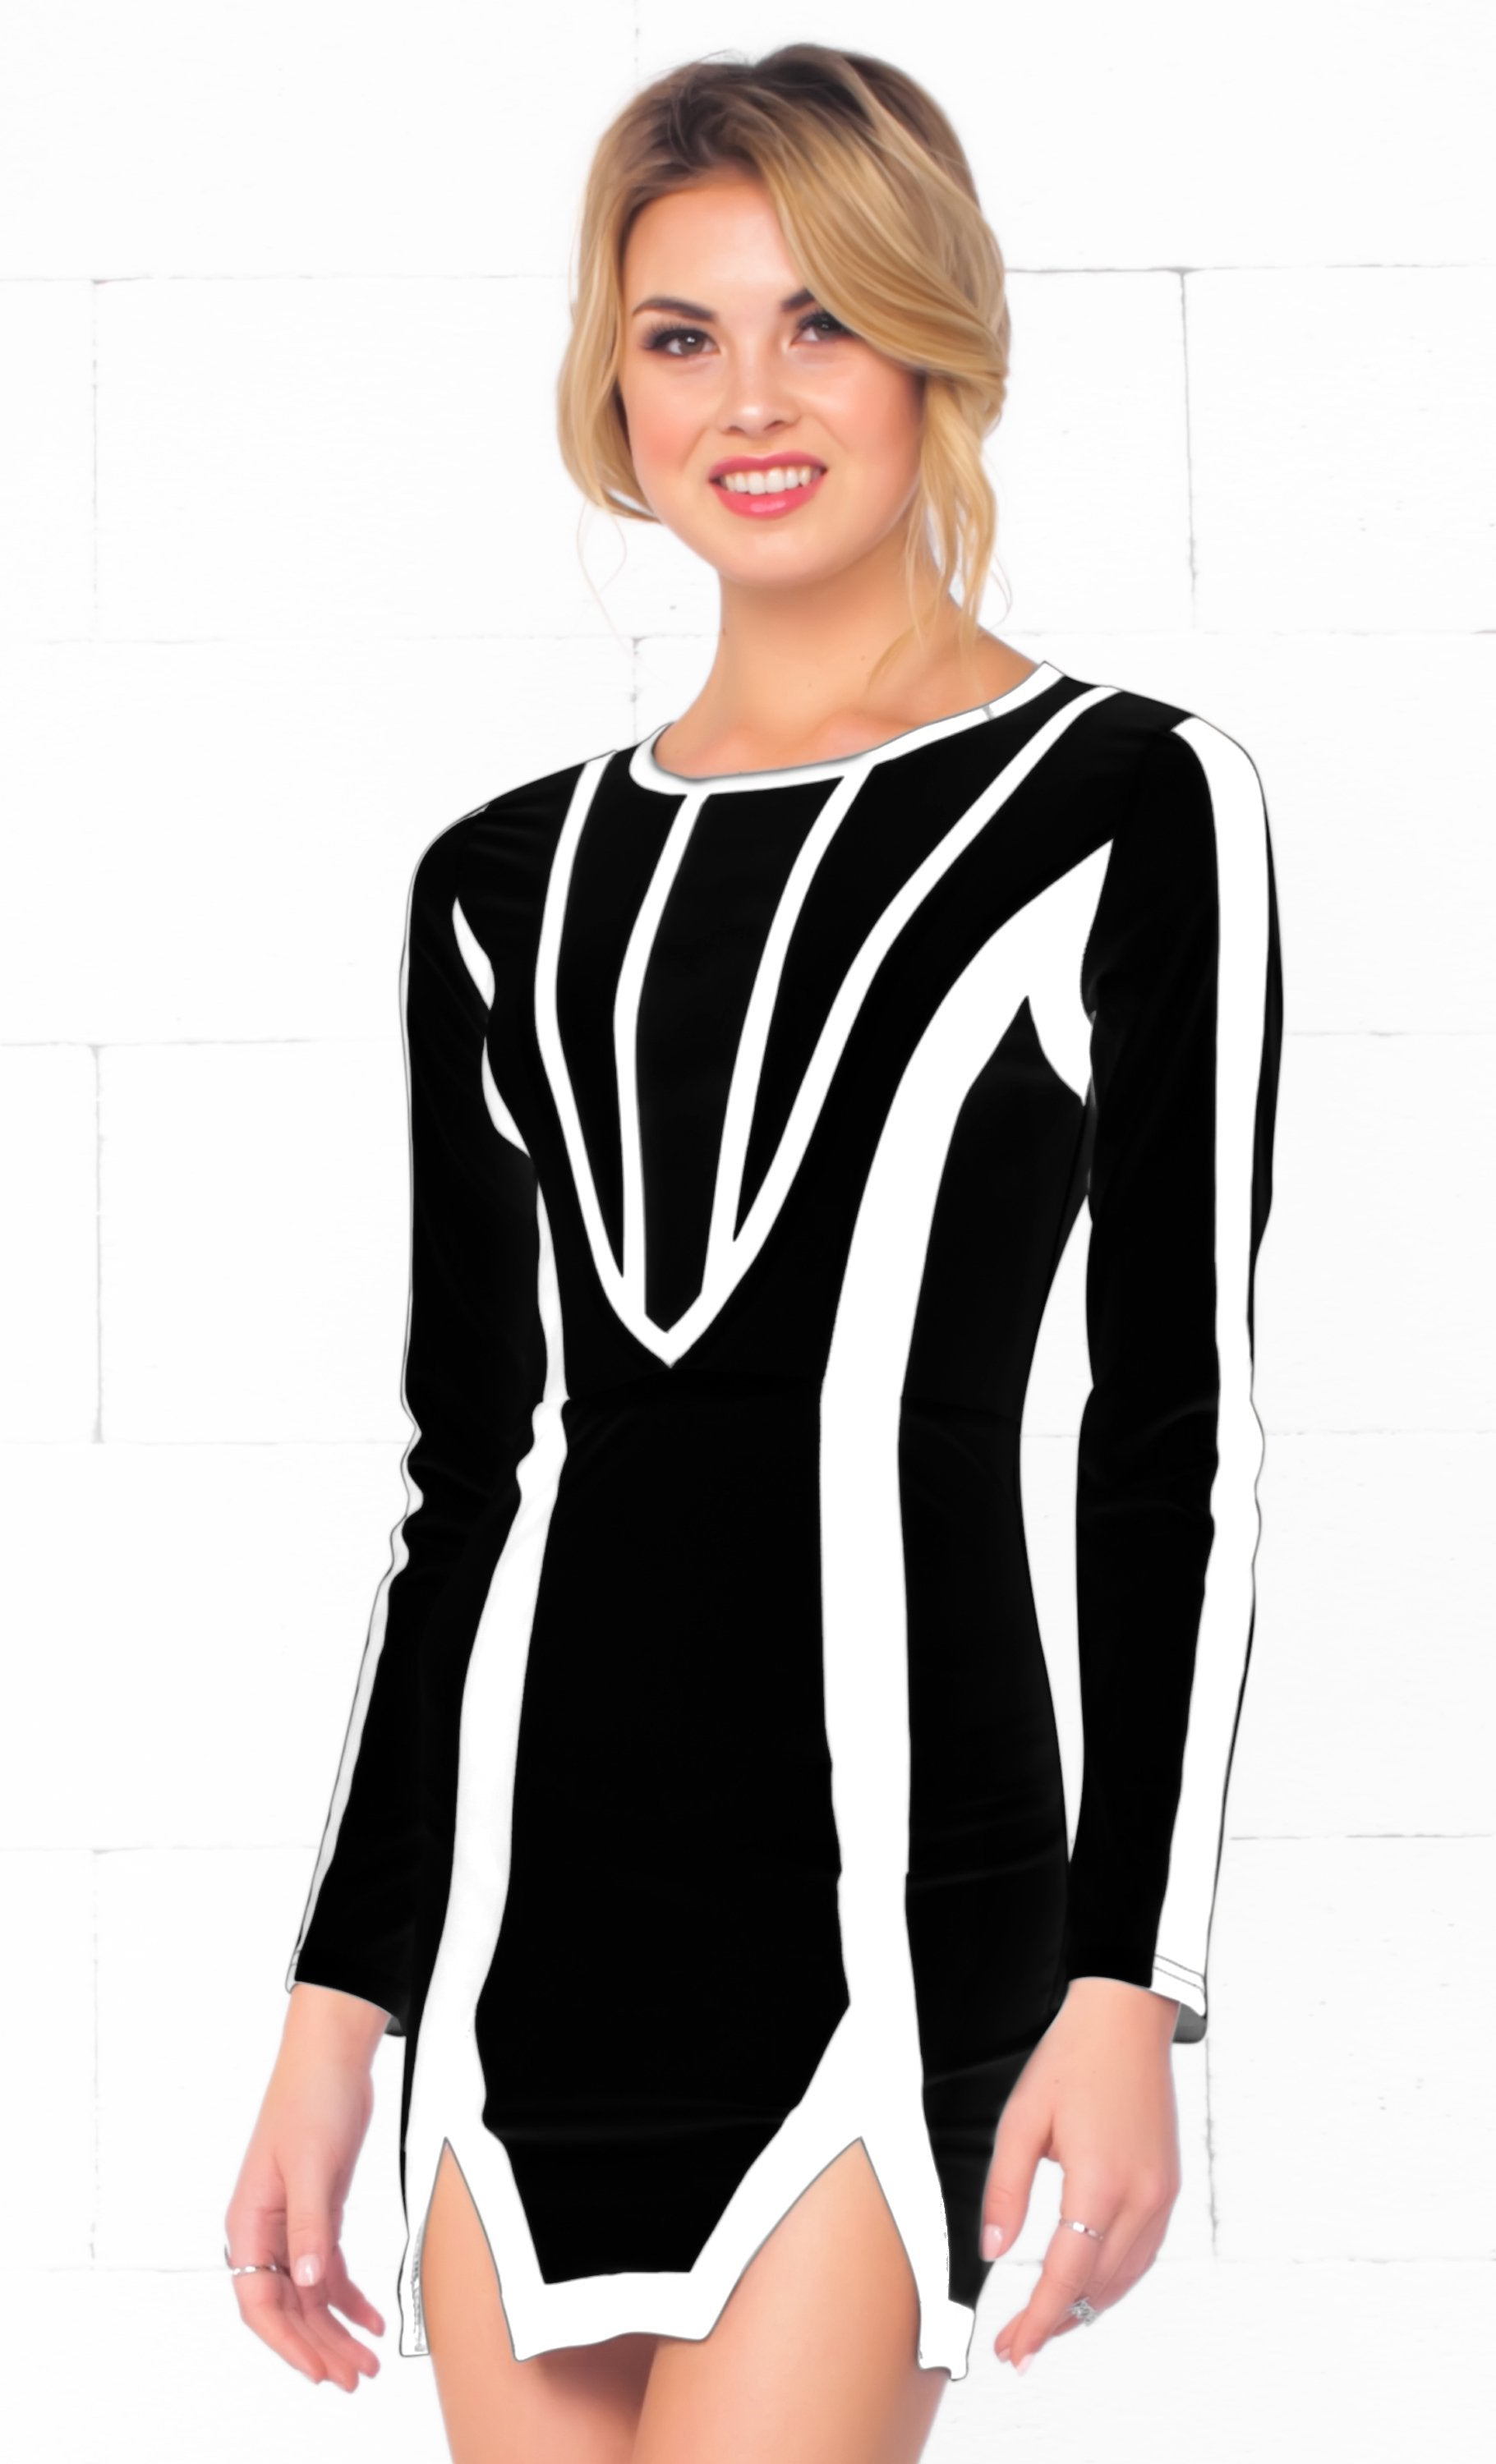 Indie XO Love Fool Black White Scoop Neck Long Sleeve Contrast Slit Hem Bodycon Mini Dress - Just Ours! - Sold Out